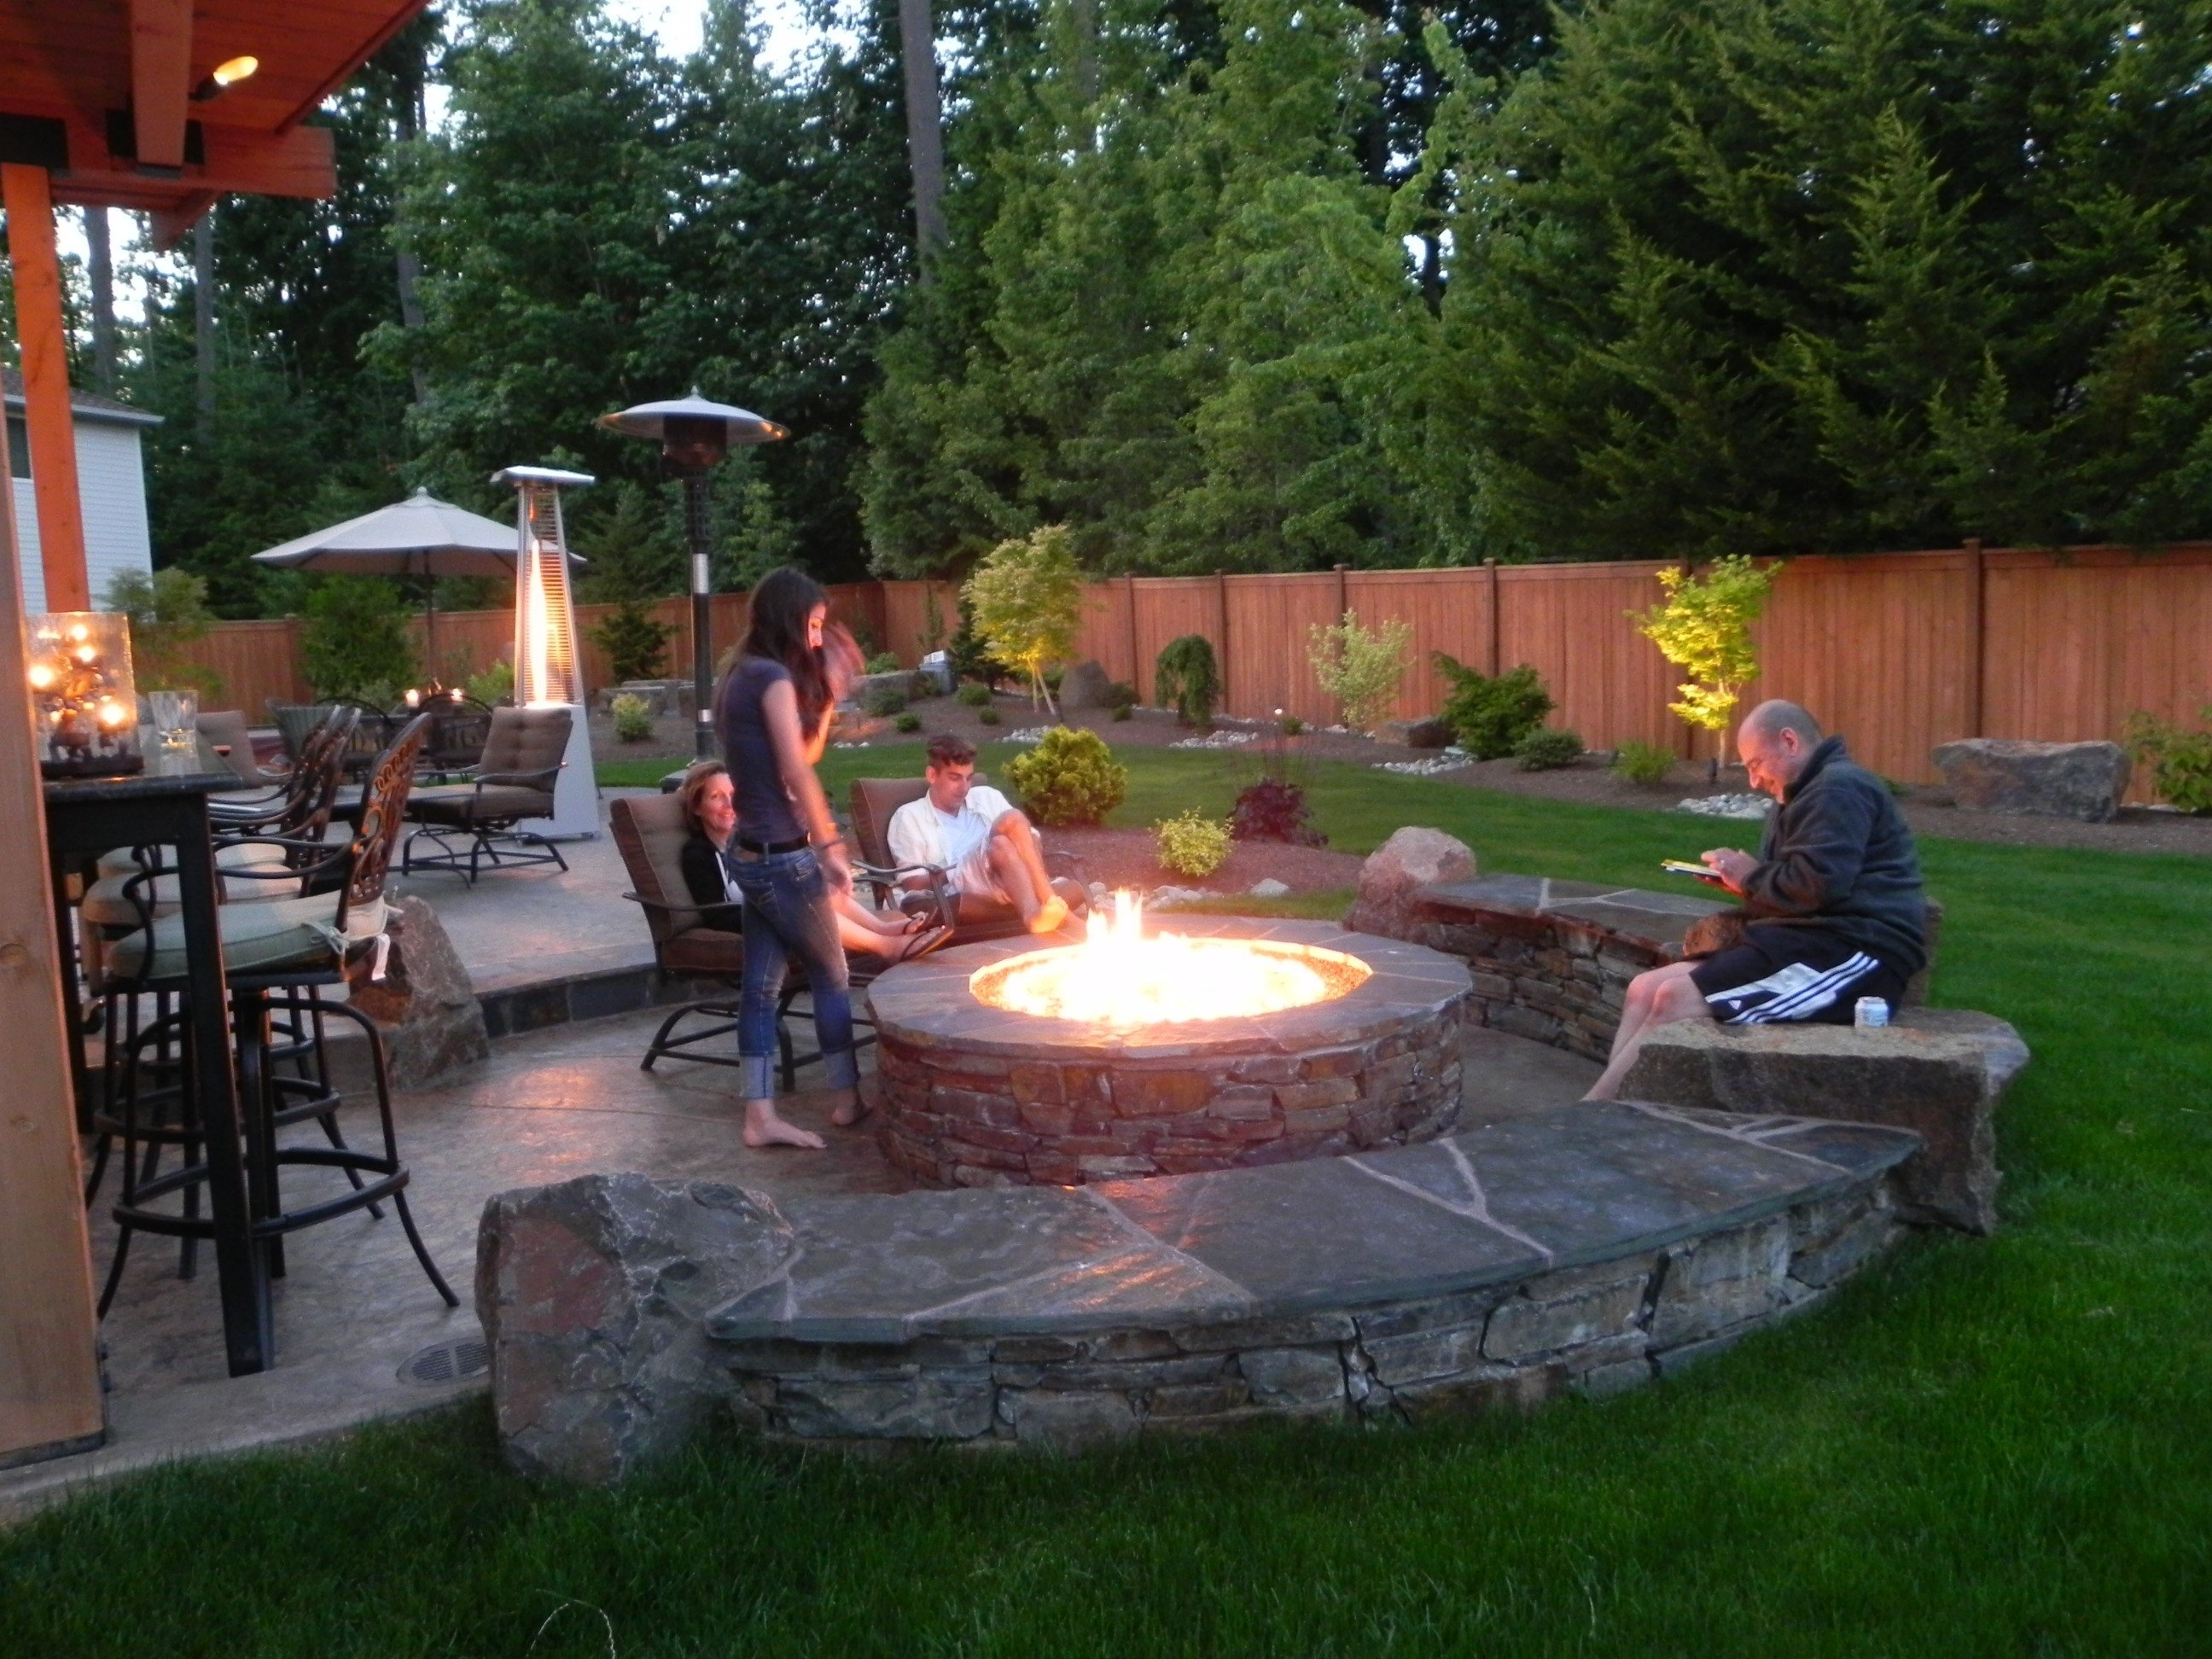 10 Perfect Patio Design Ideas With Fire Pits outdoor fire pits and pit safety landscaping ideas bluestone plus 2021